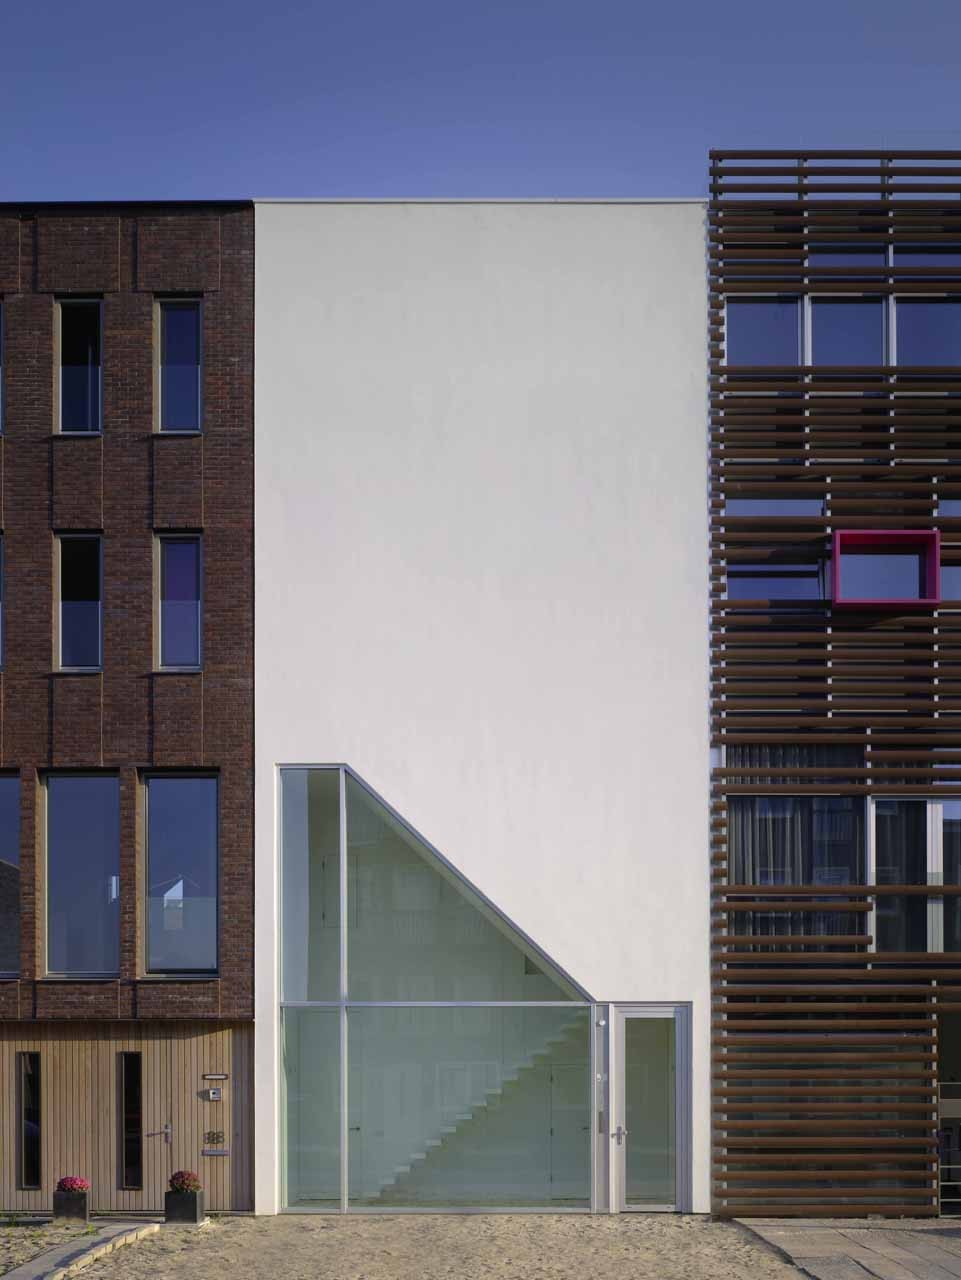 House Ijburg / Rocha Tombal Architects, Courtesy of  rocha tombal architects